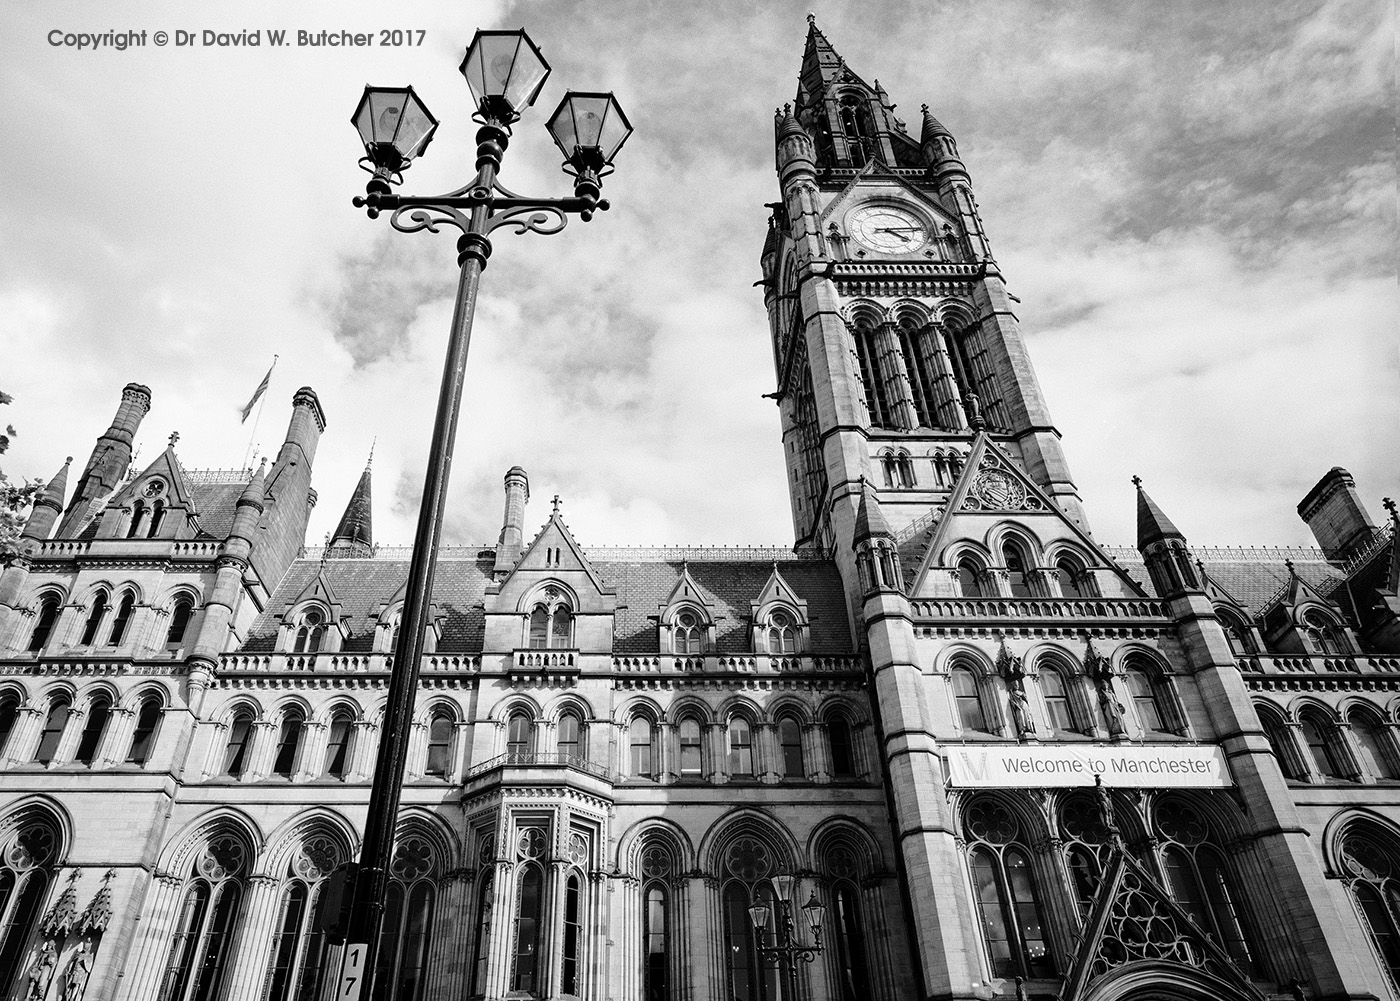 Manchester Town Hall, England